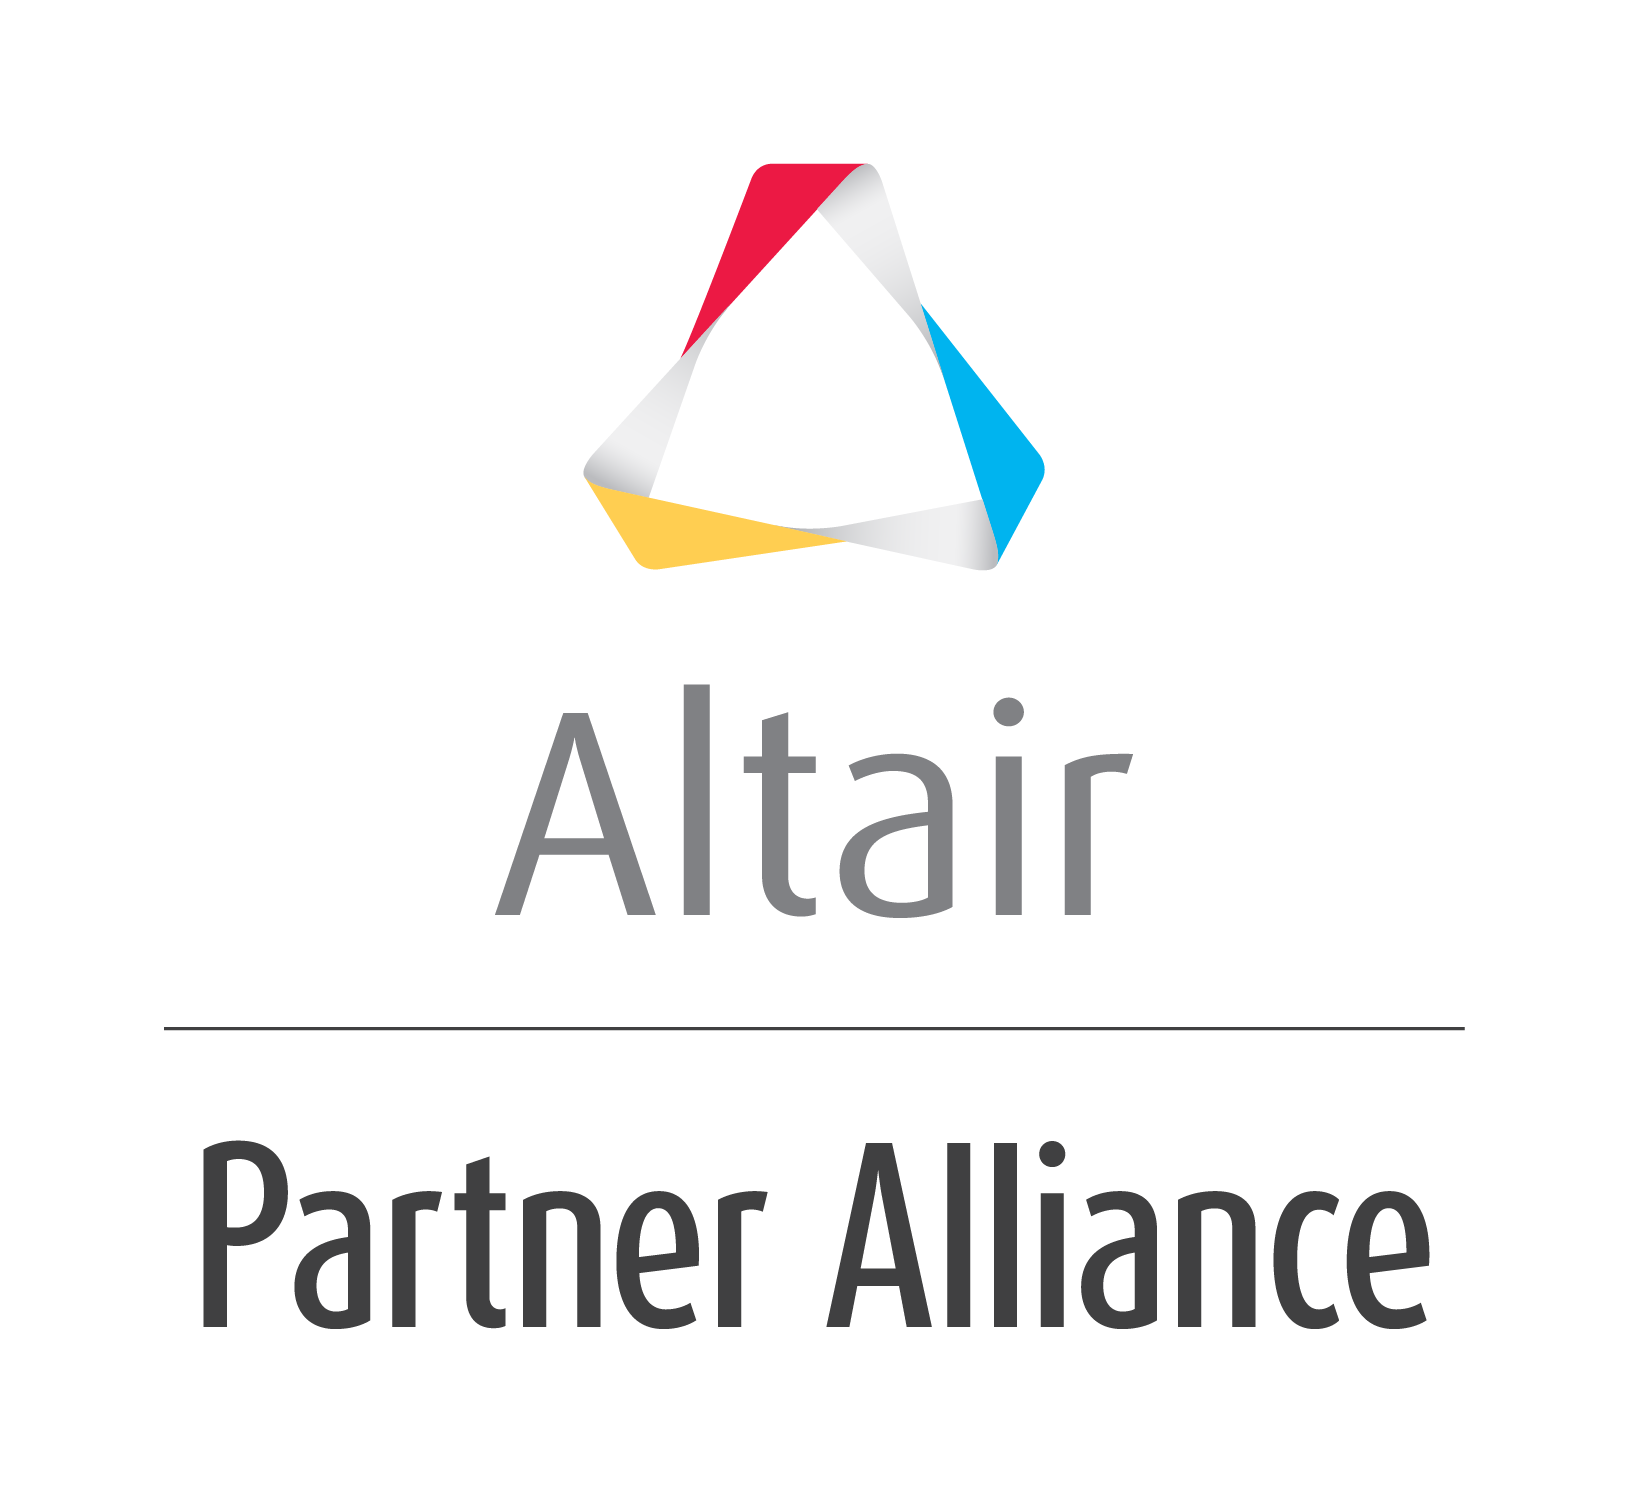 About Altair Partner Alliance